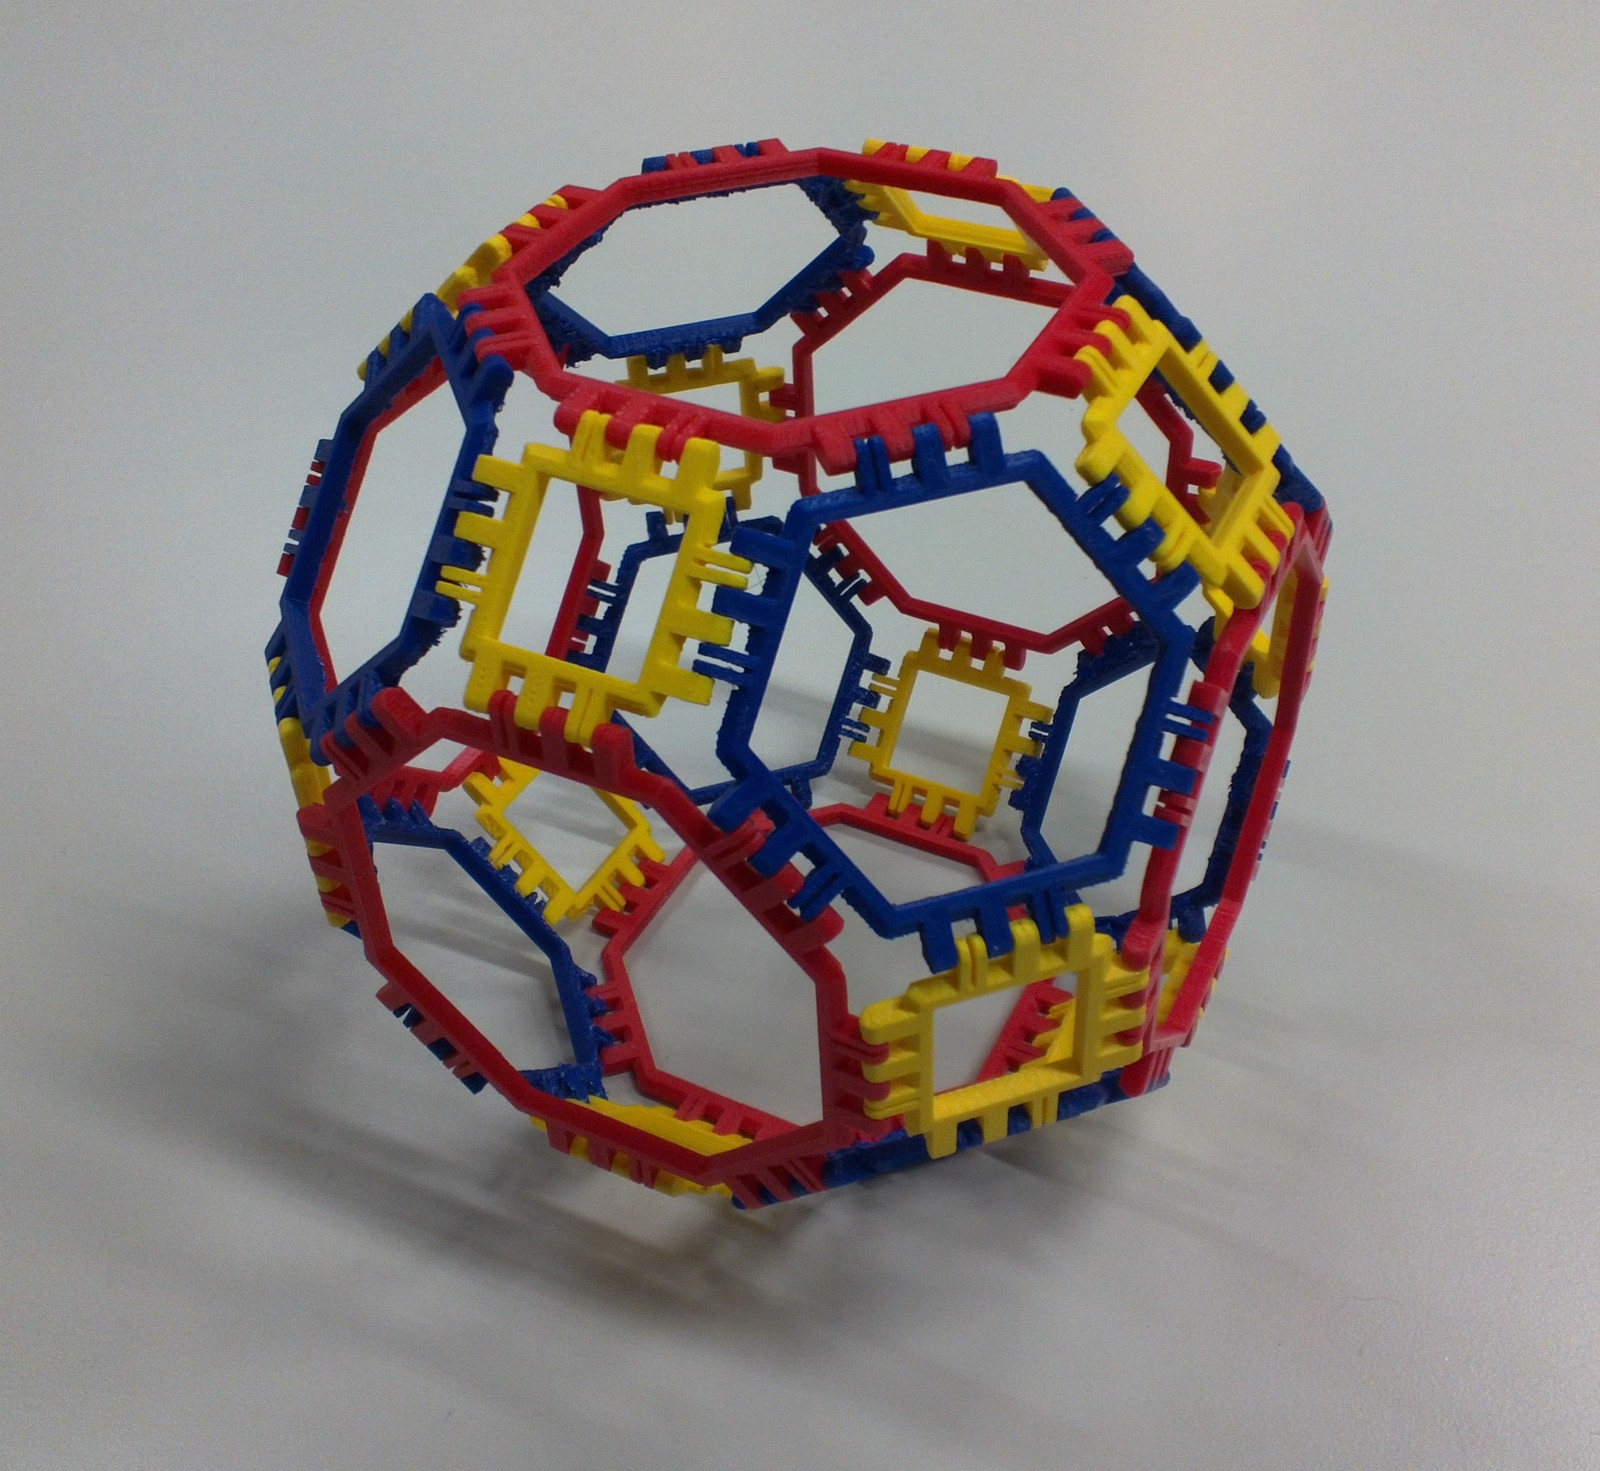 Cover image for article 'Truncated Cuboctahedron'